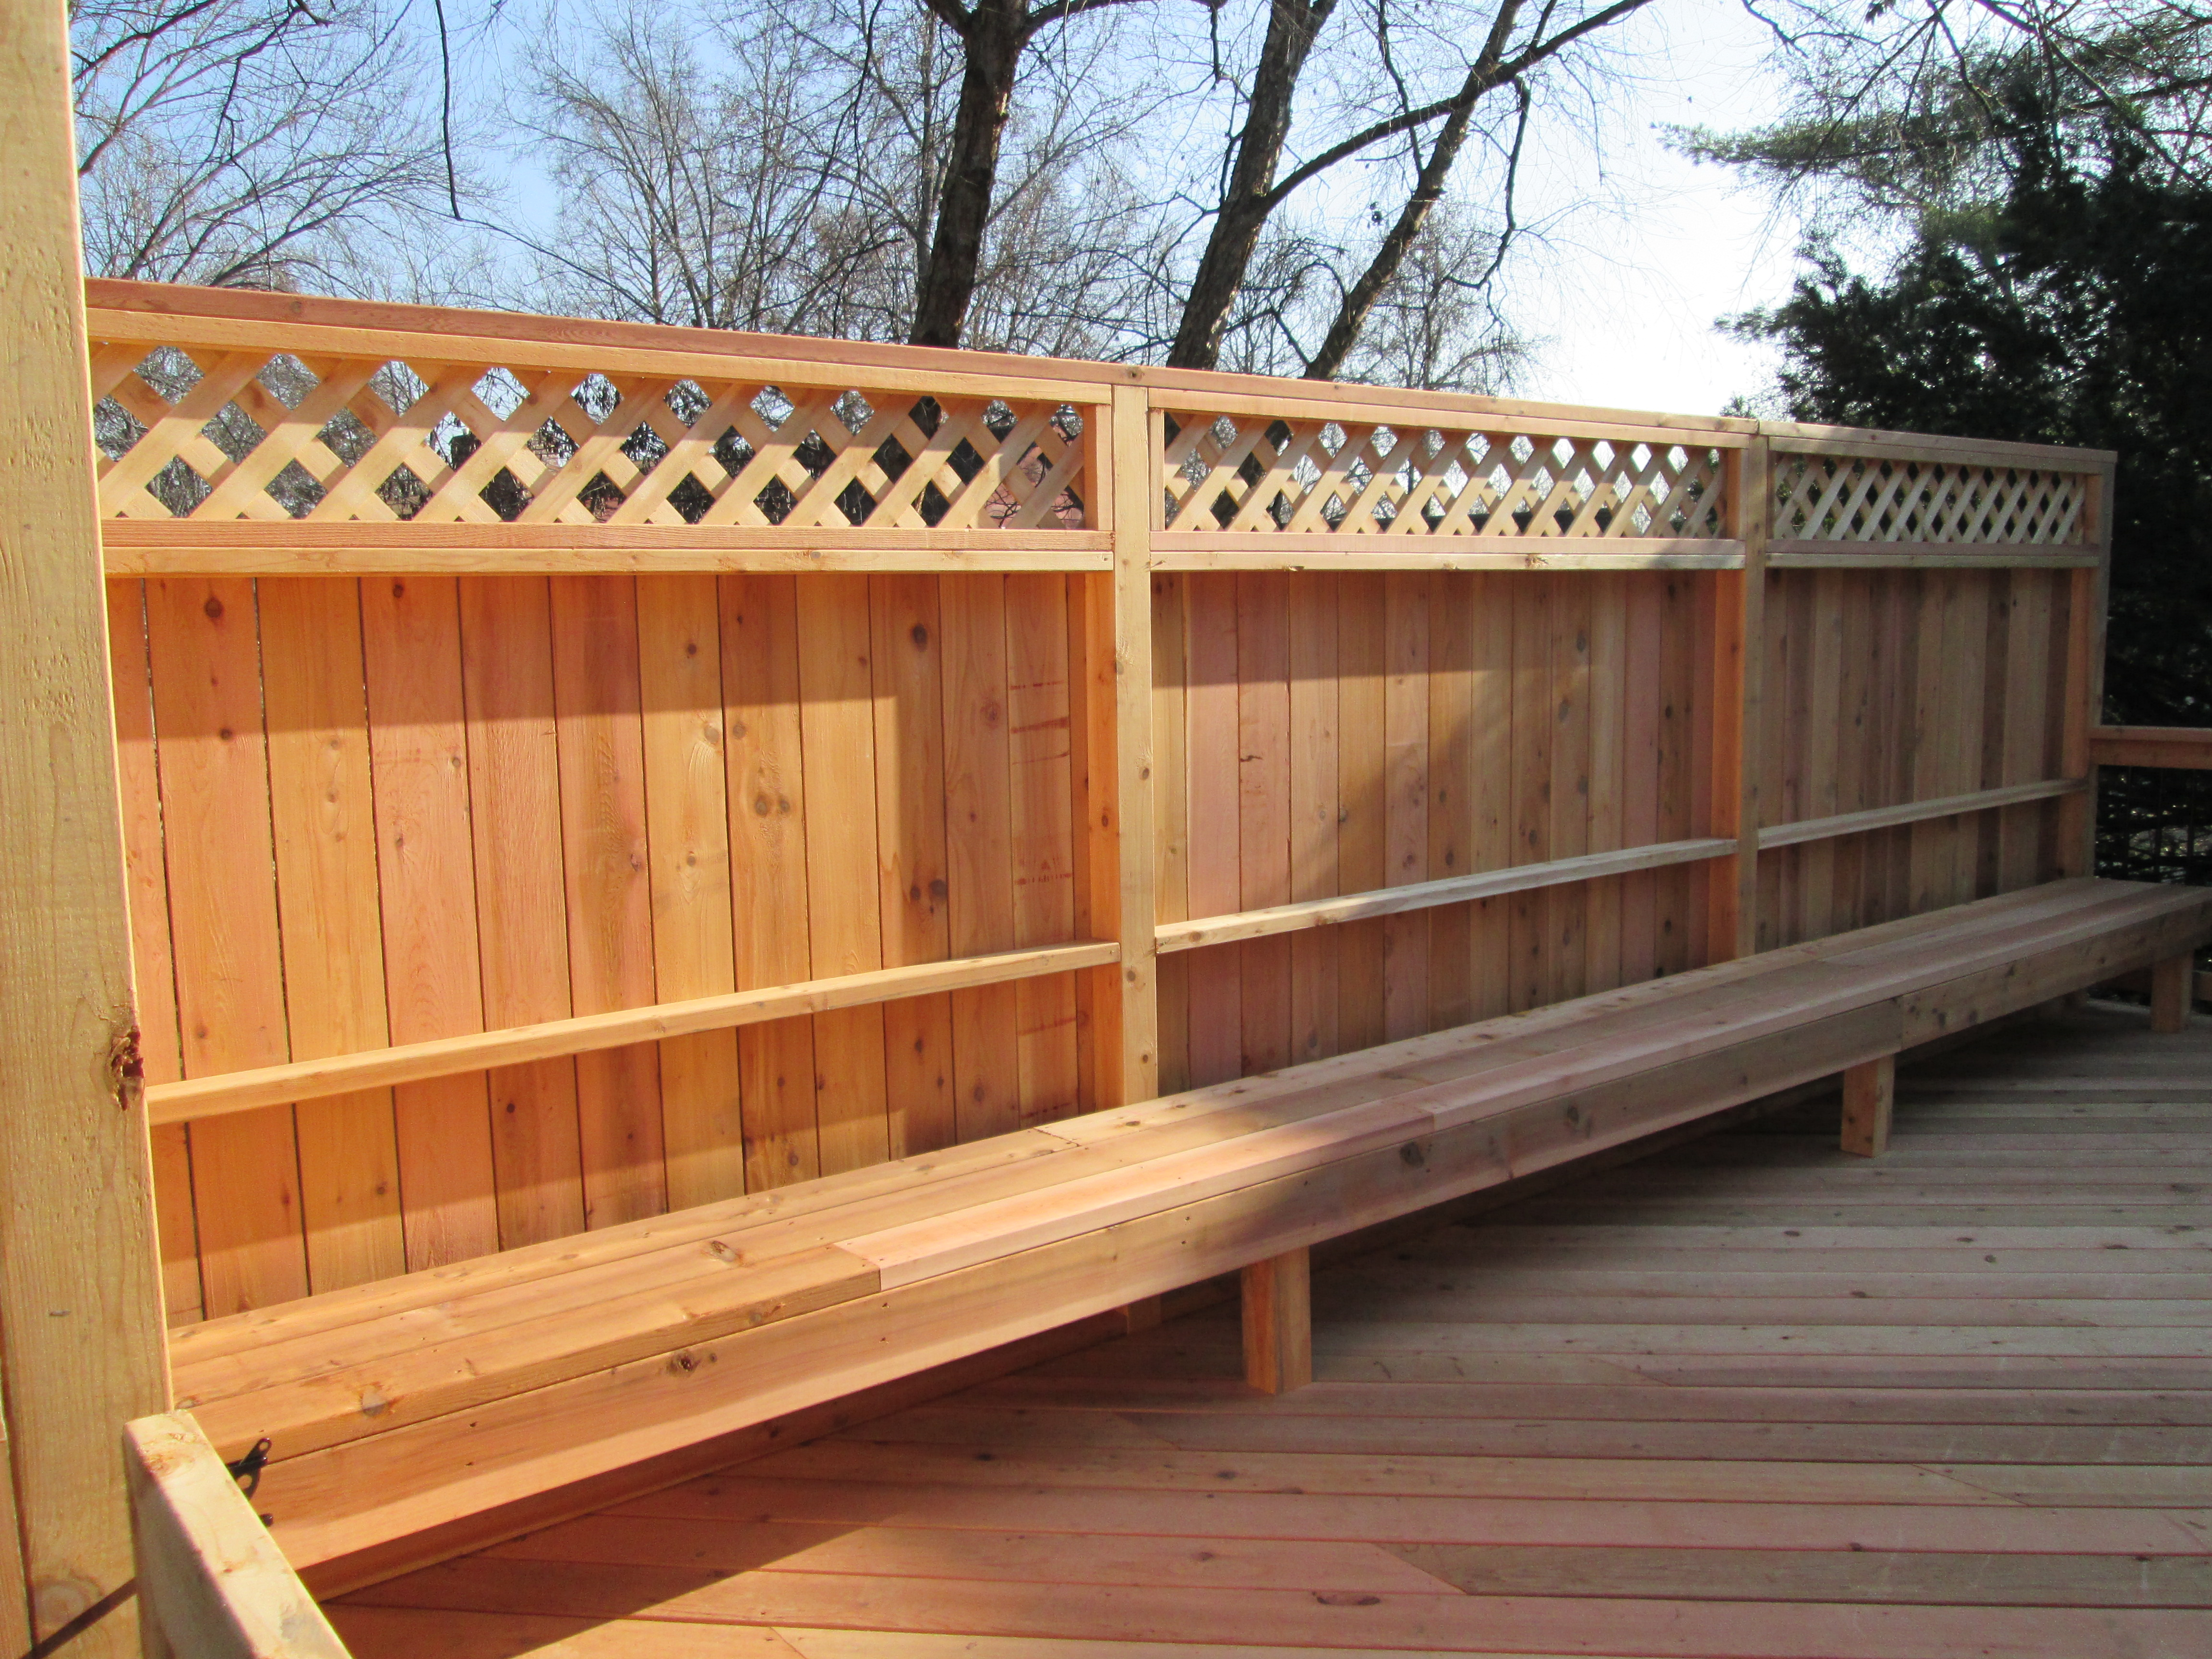 7 Deck Rail Ideas For Your Cedar Deck St Louis Decks